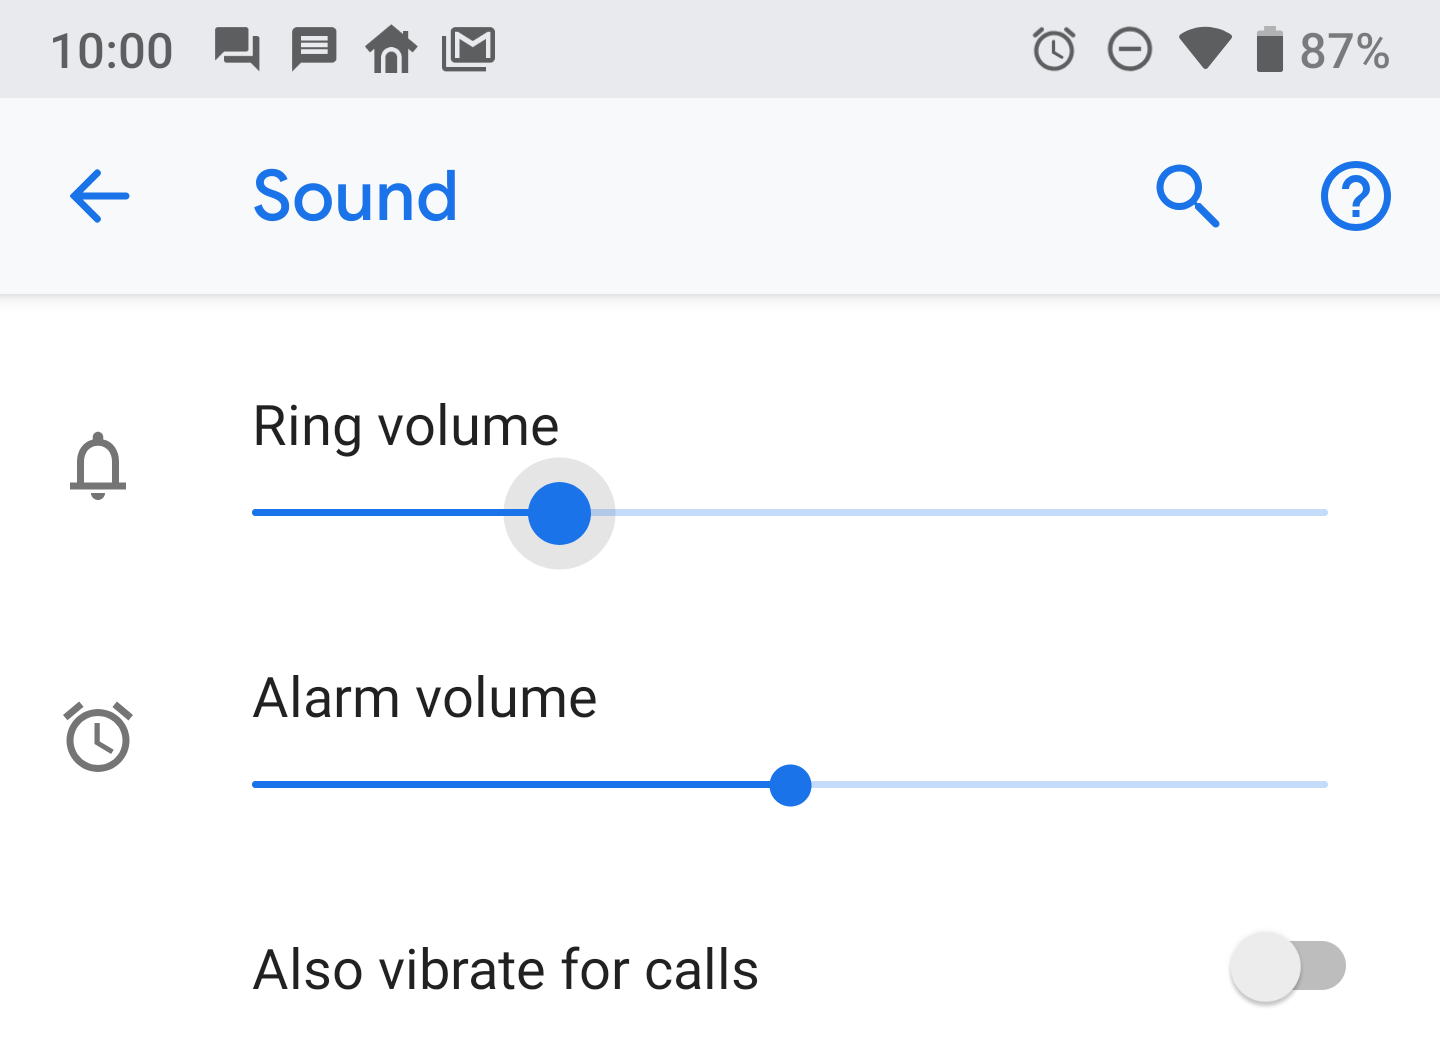 There's no way to silently change the ringer volume in Android Pie